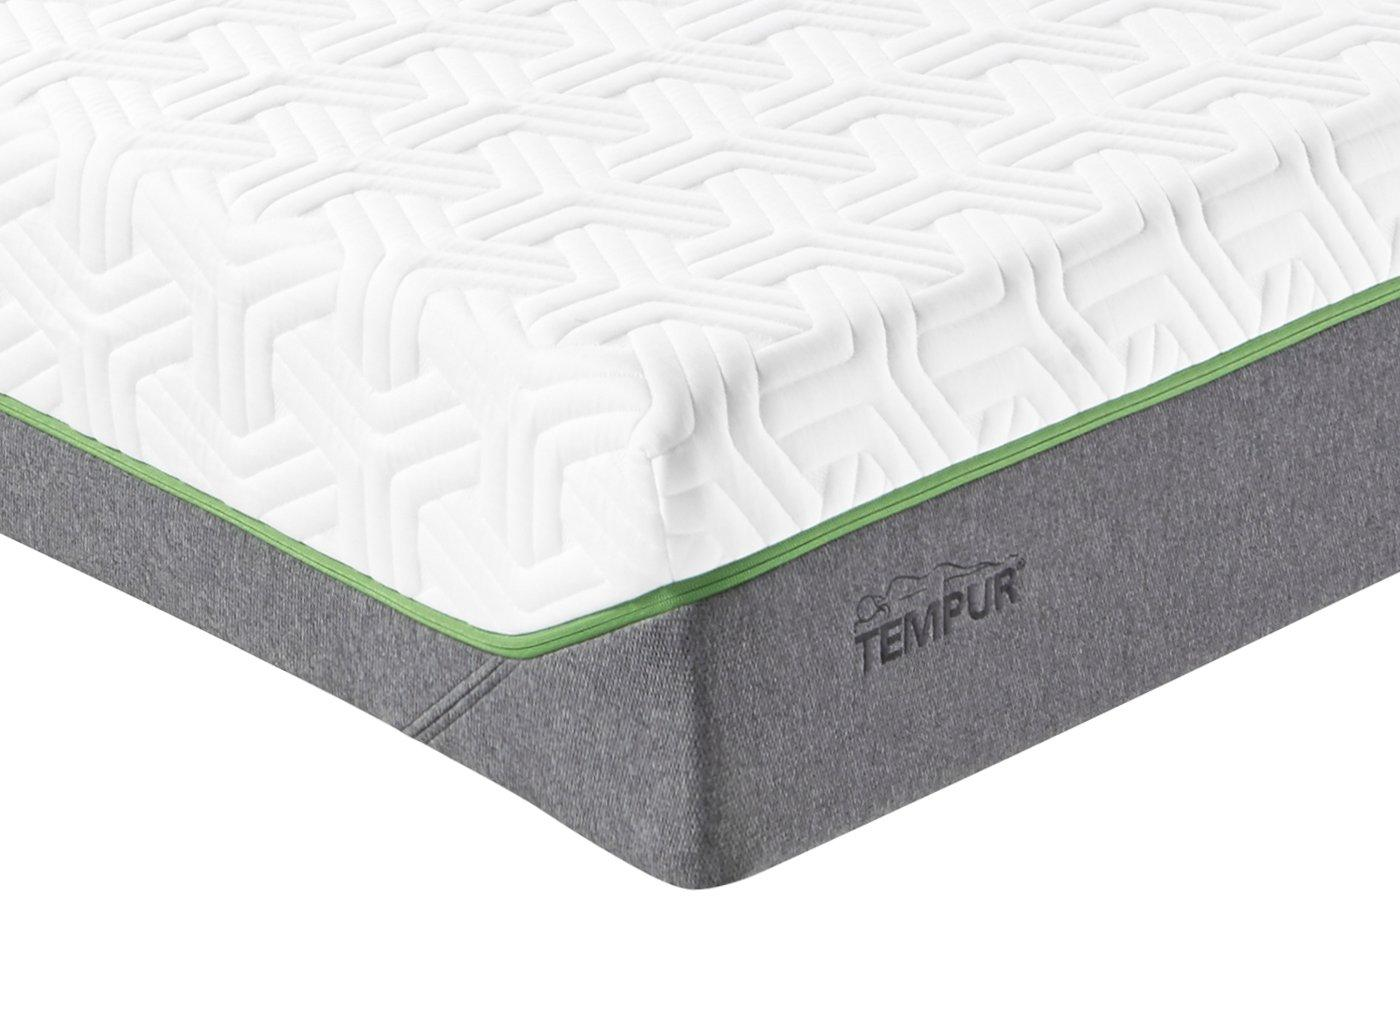 Tempur Cooltouch Hybrid Elite Adjustable Mattress - Medium 3'0 Single